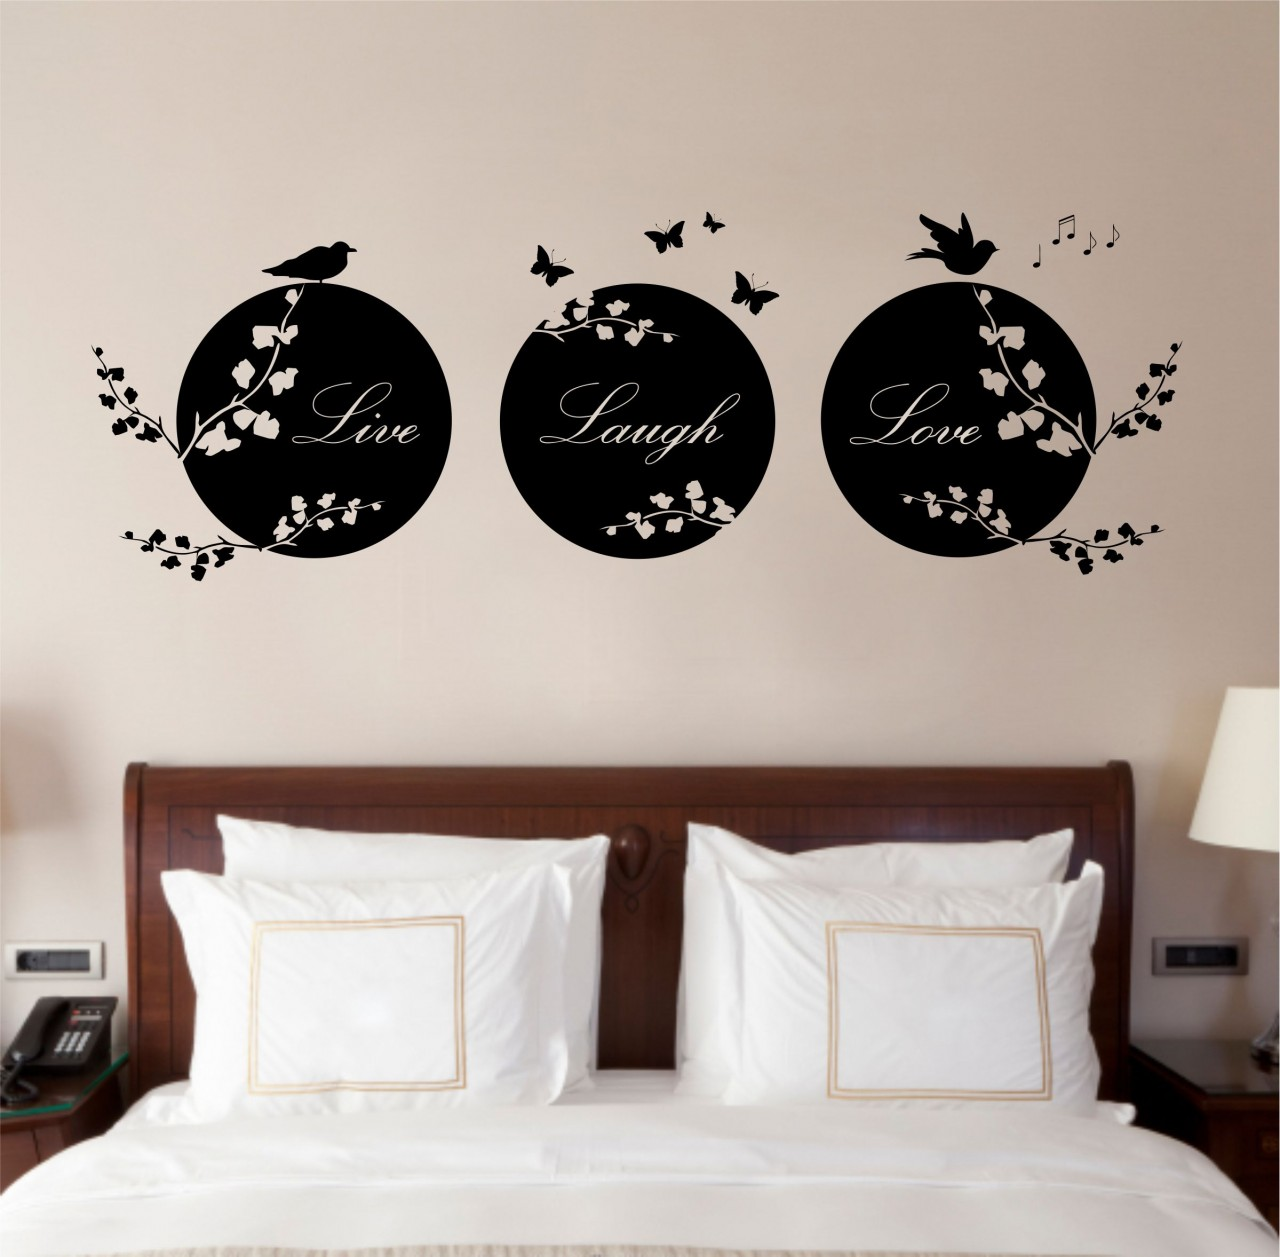 5 types of wall art stickers to beautify the room inoutinterior - Wall decor murals ...